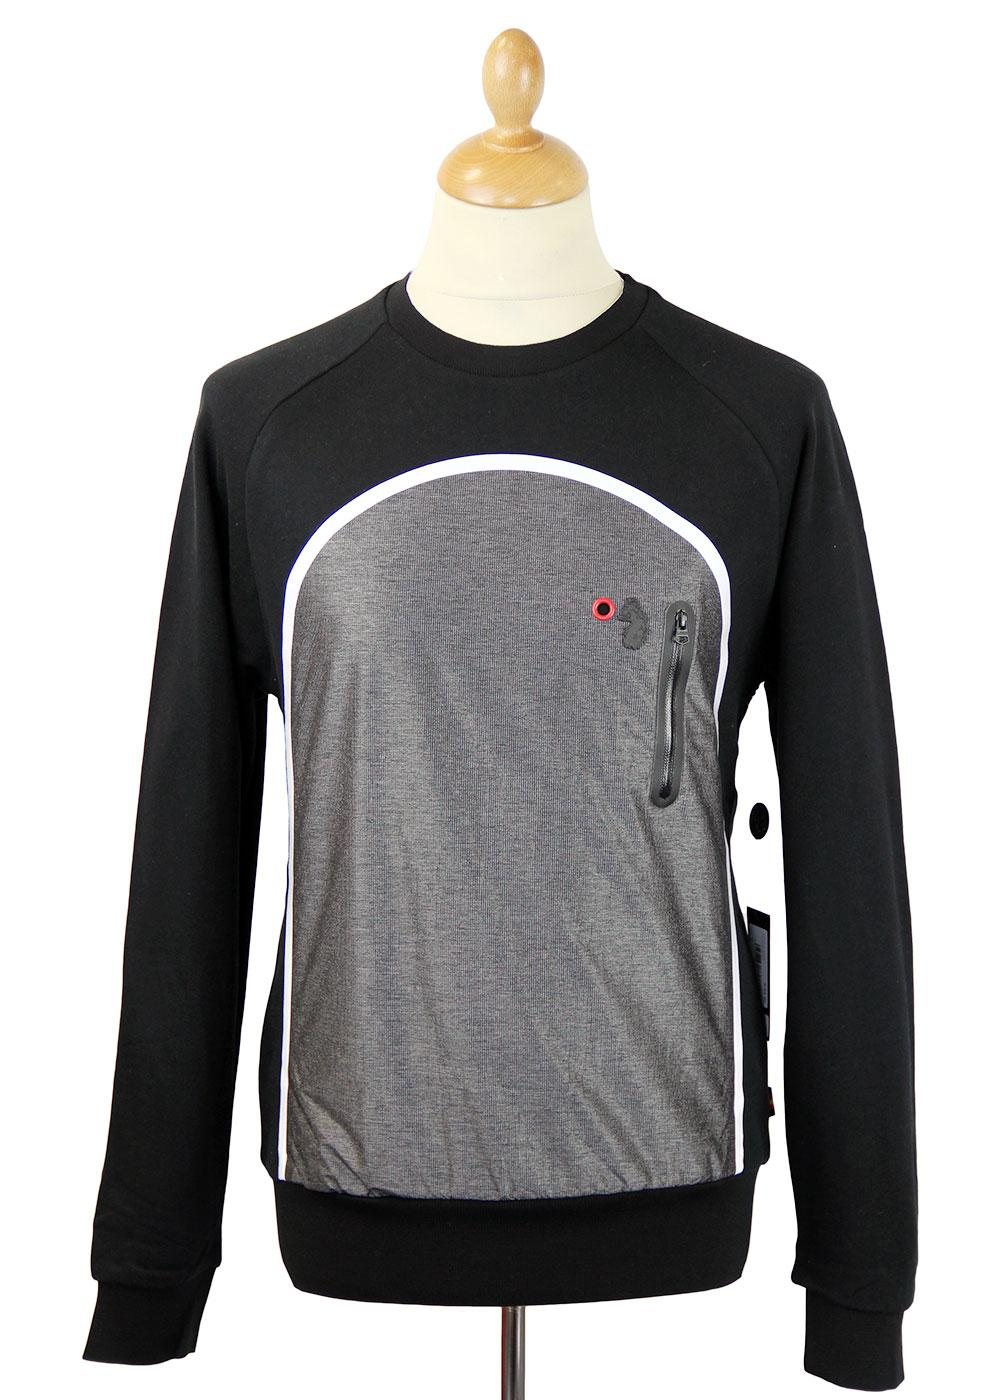 Cappy LUKE 1977 Retro Indie Technical Sweatshirt B